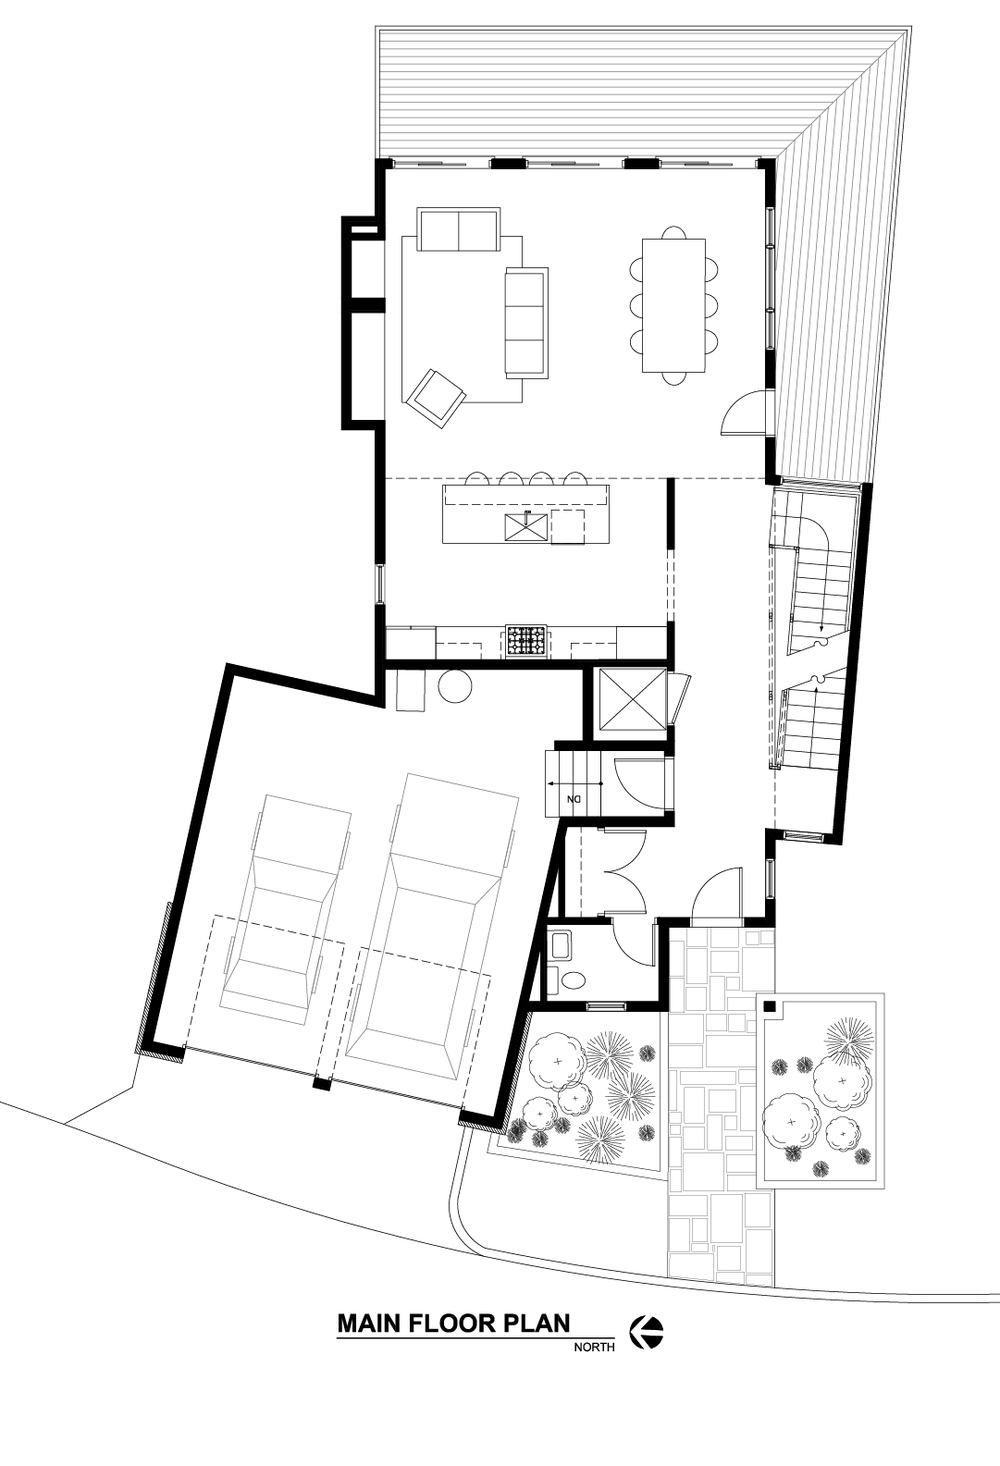 A3.2 MAIN FLOOR PLAN H5-01.png